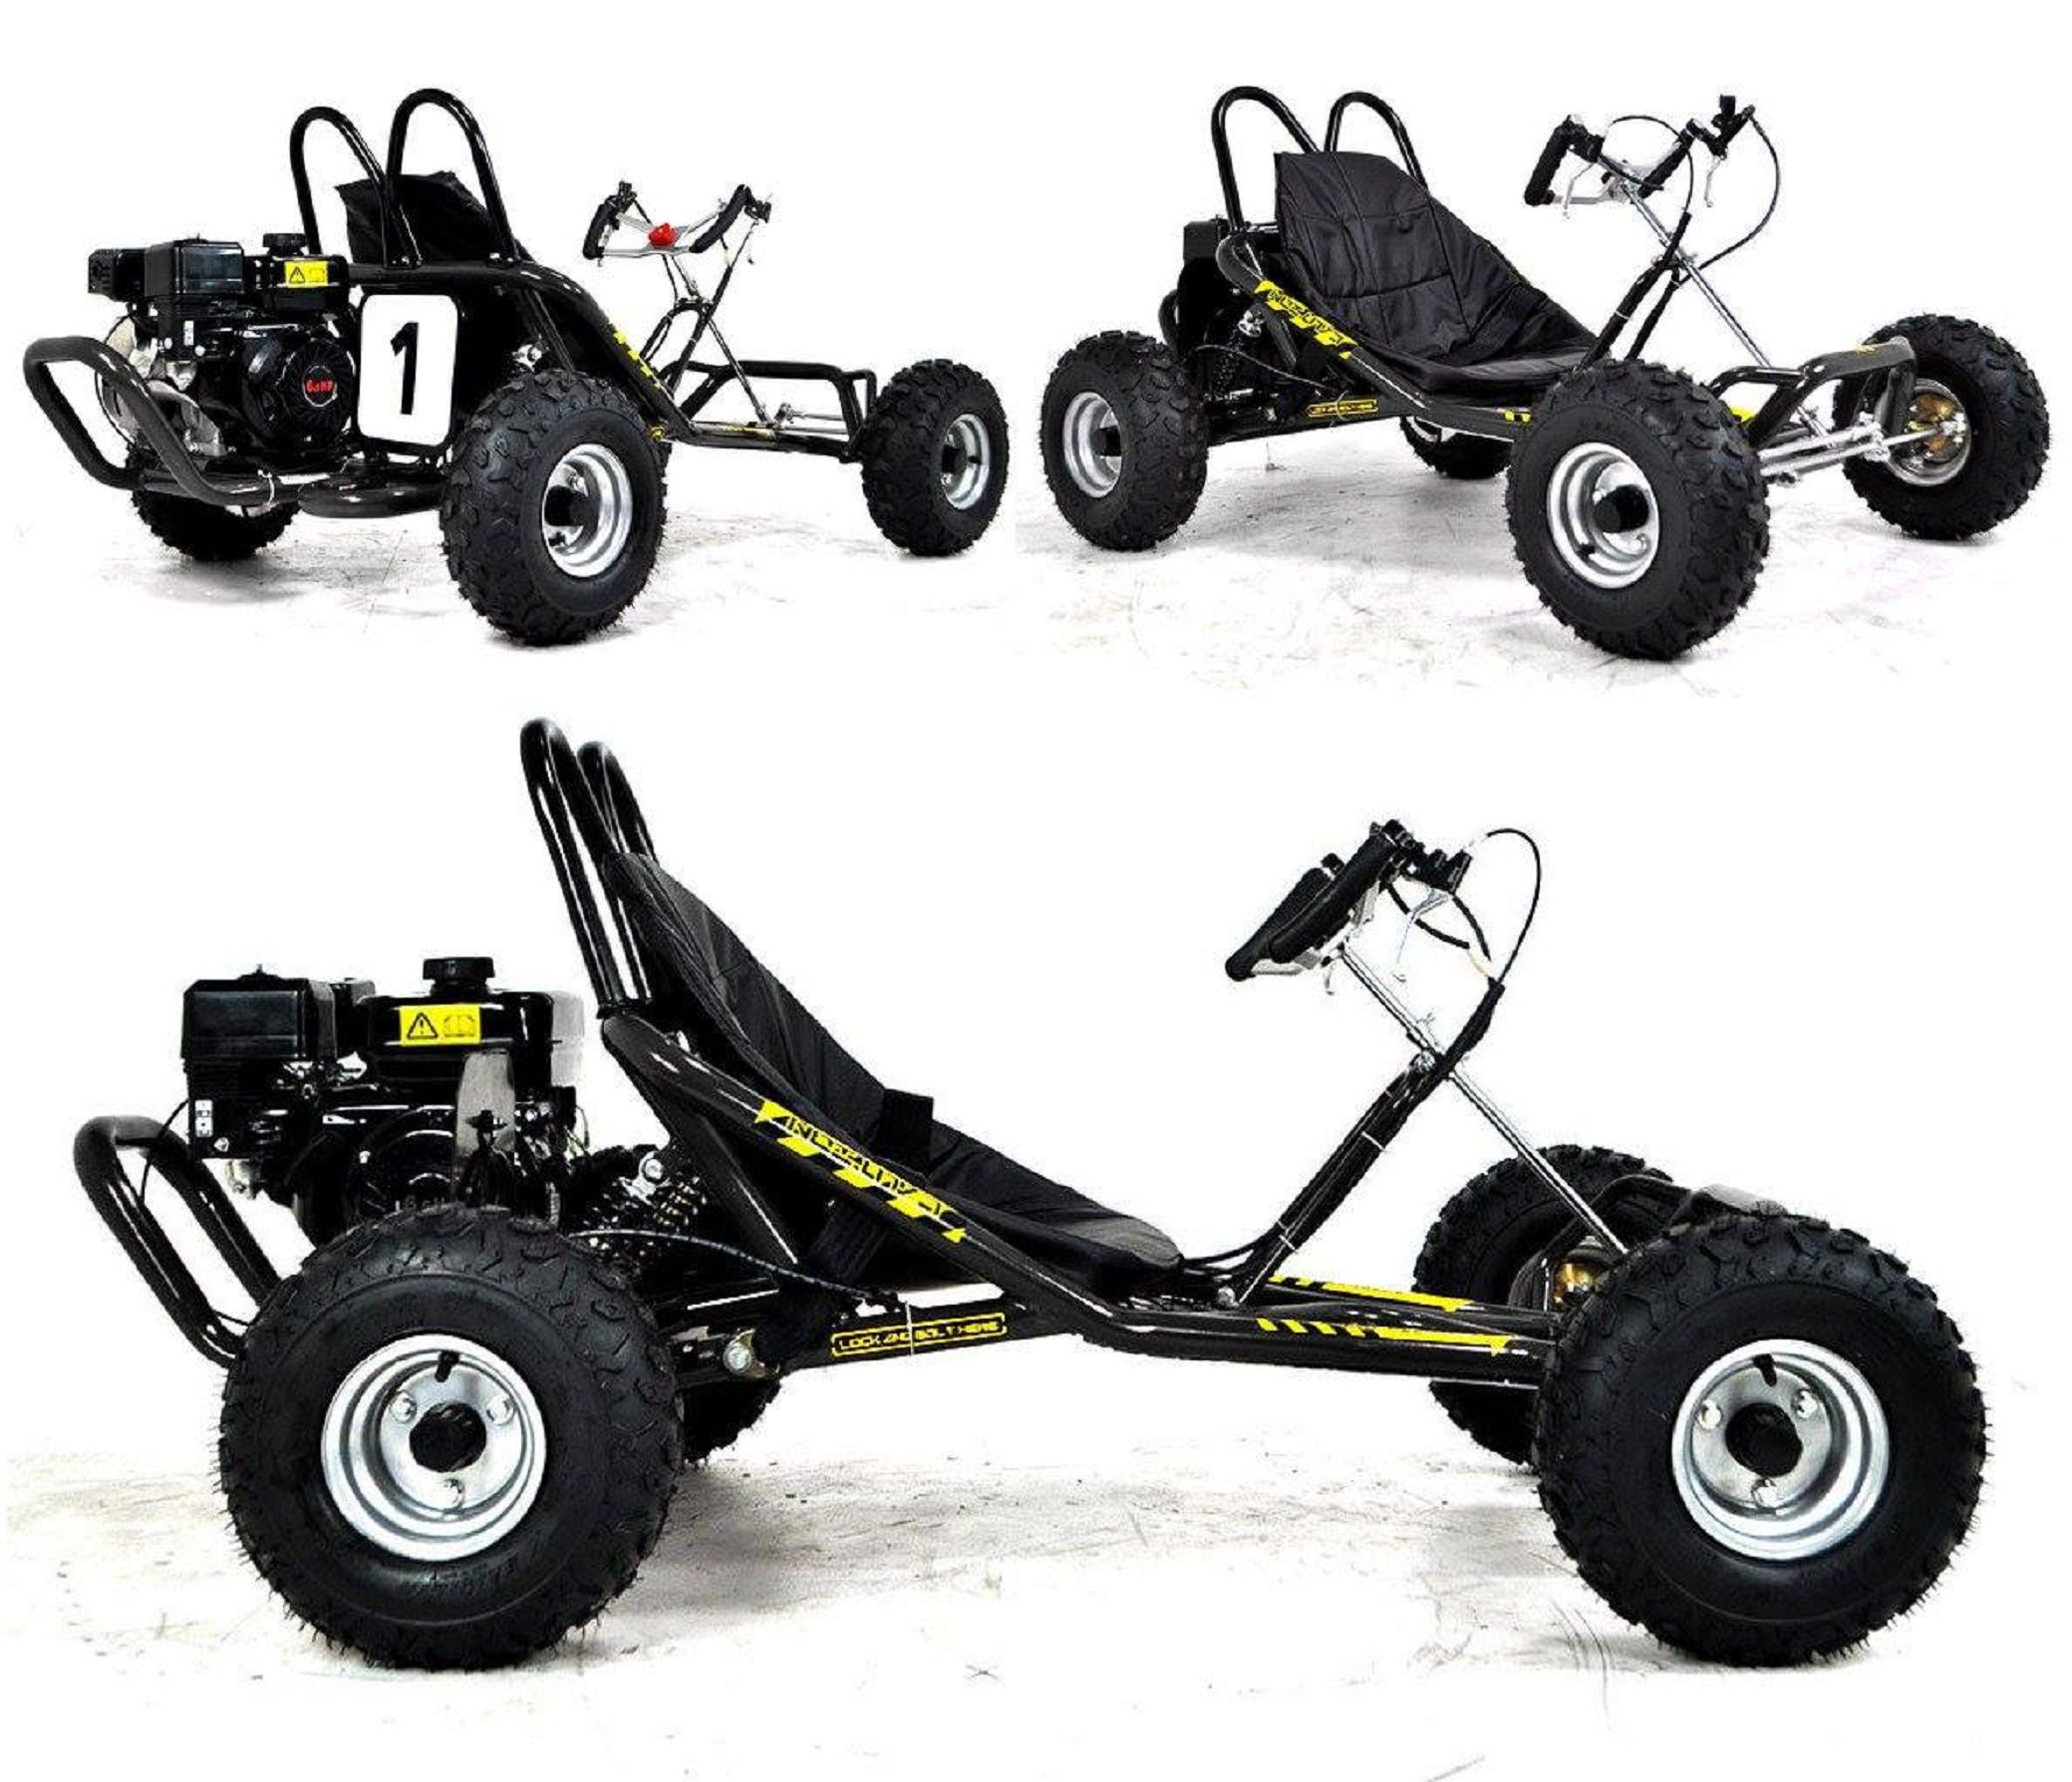 FunBikes 2015 'The Drift 2' 200cc Go Kart Wet Clutch Dune Buggy, Classified